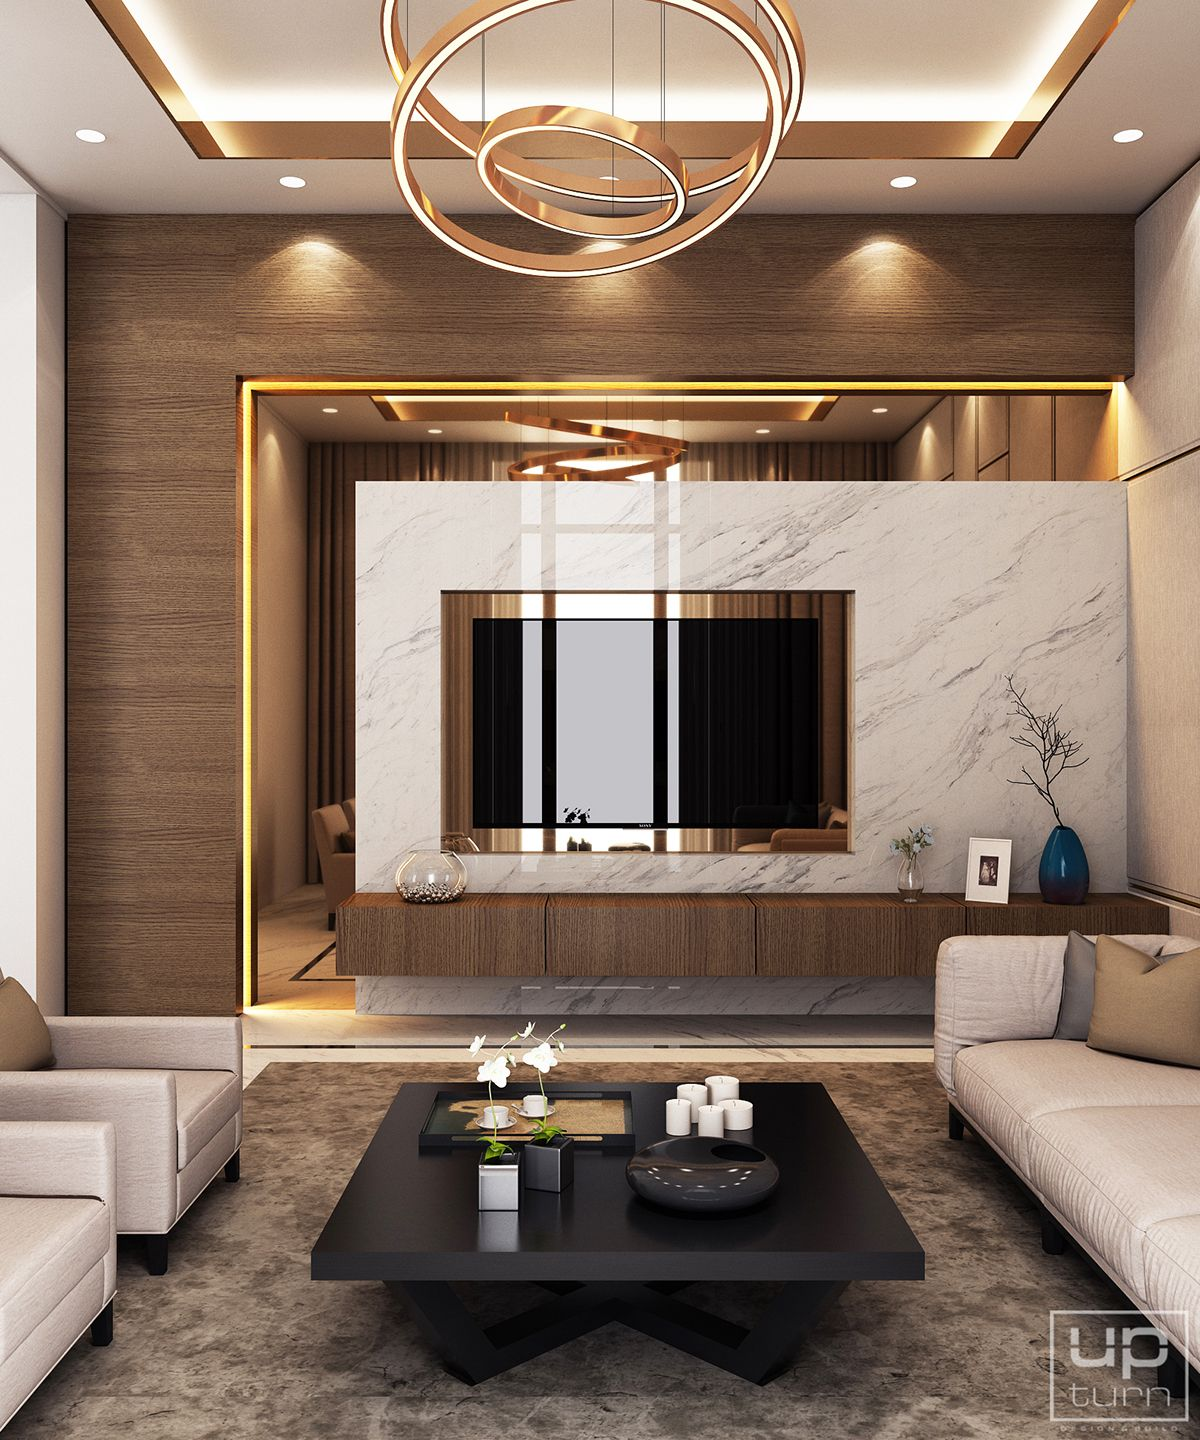 Interior Design Ideas: Luxury Modern Villa - Qatar On Behance